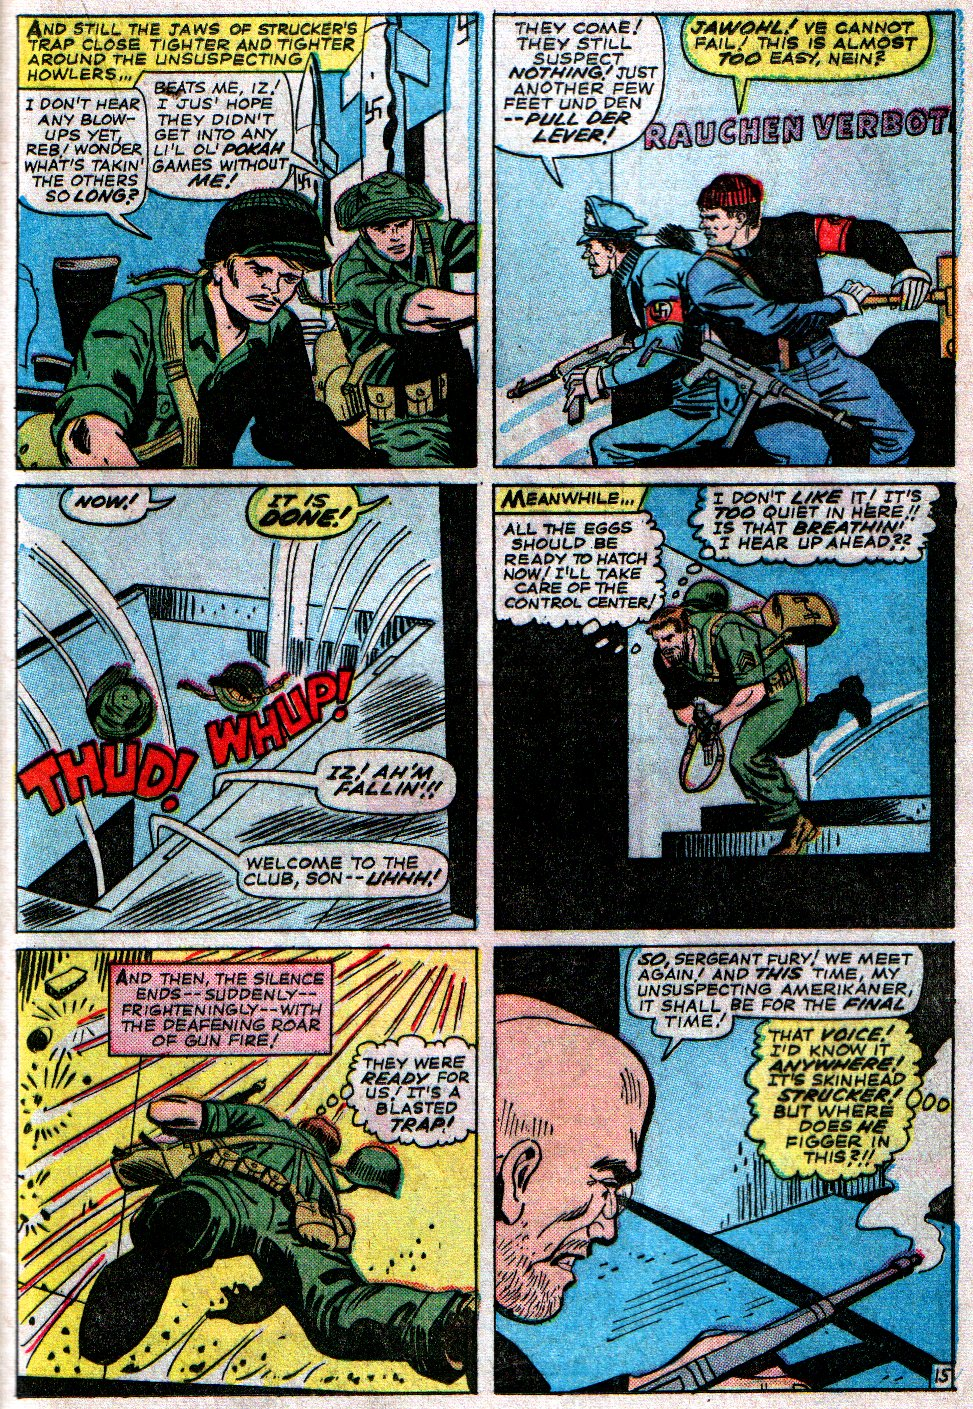 Read online Sgt. Fury comic -  Issue #14 - 21